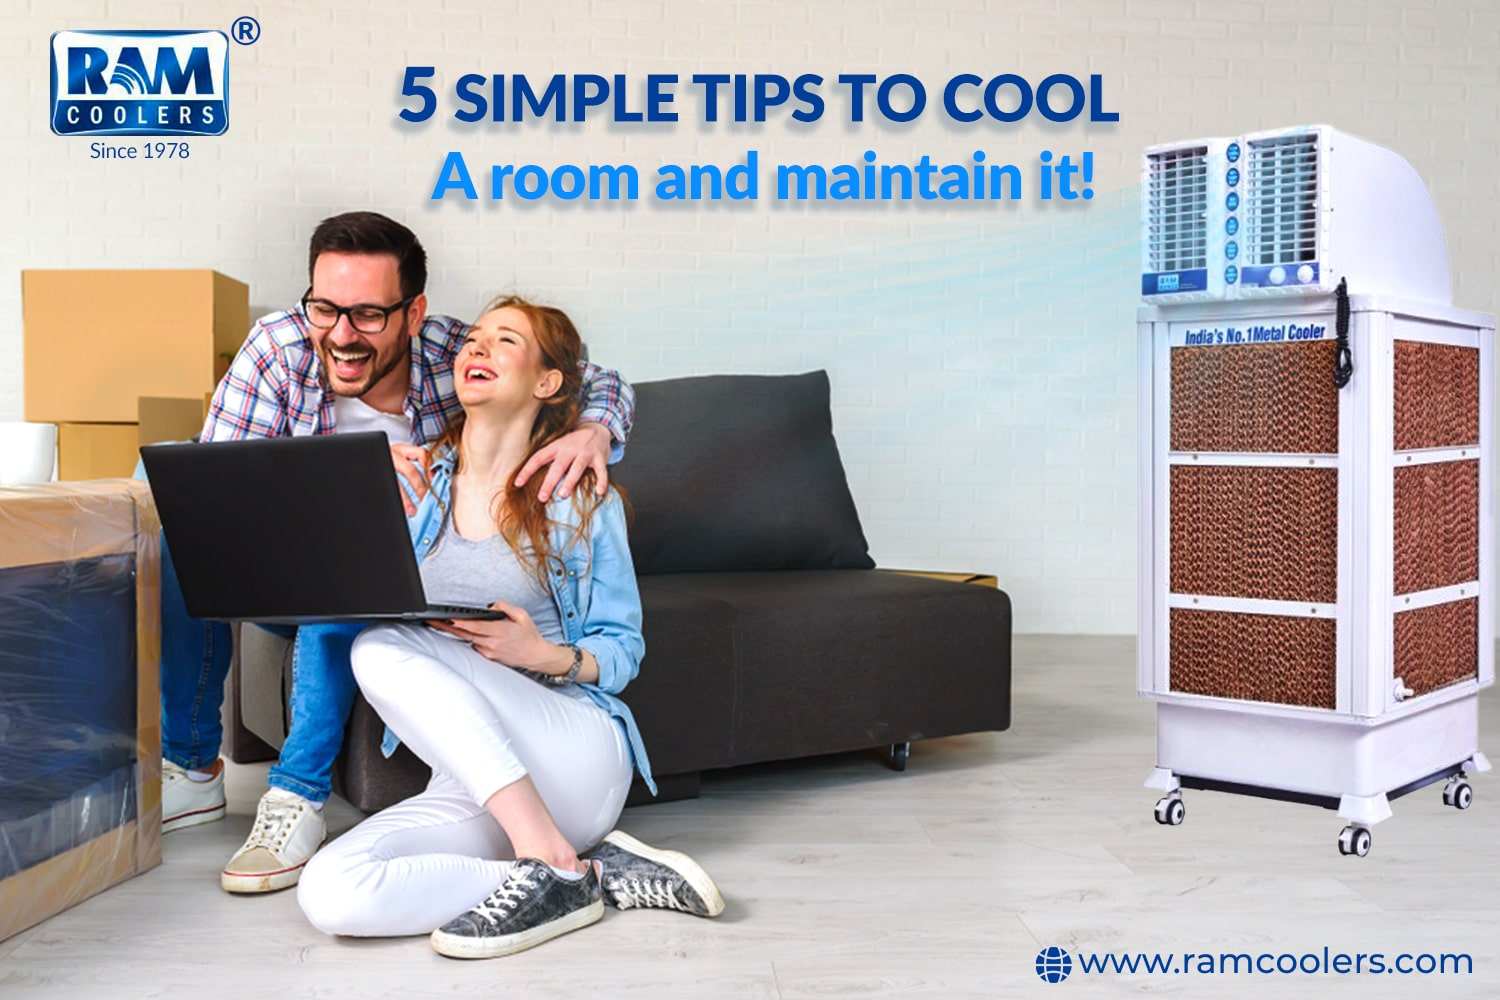 Simple tips to cool a room